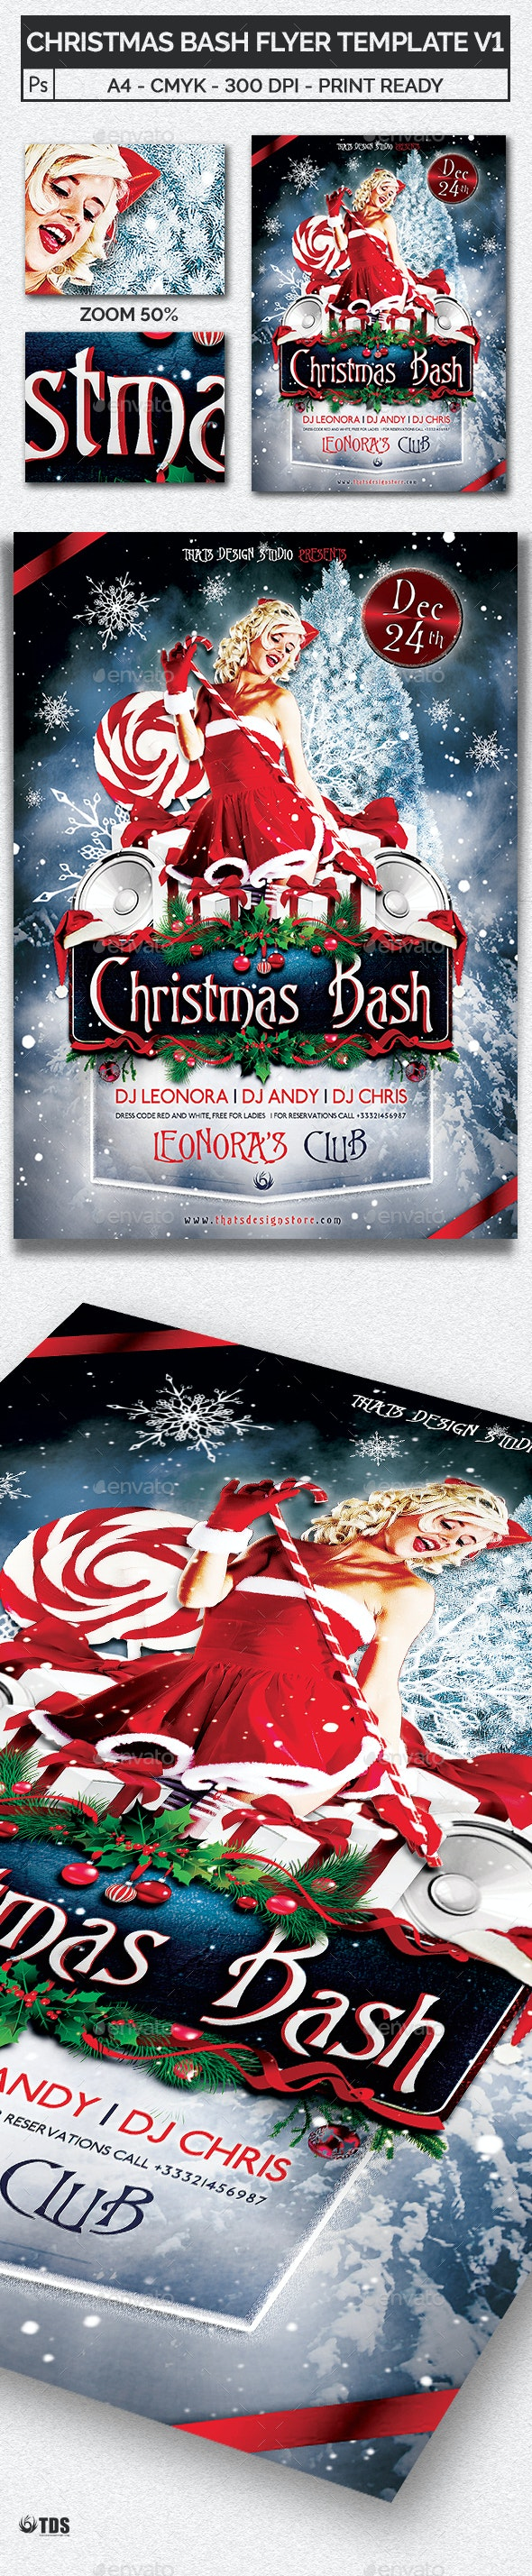 Christmas Bash Flyer Template V1 - Clubs & Parties Events